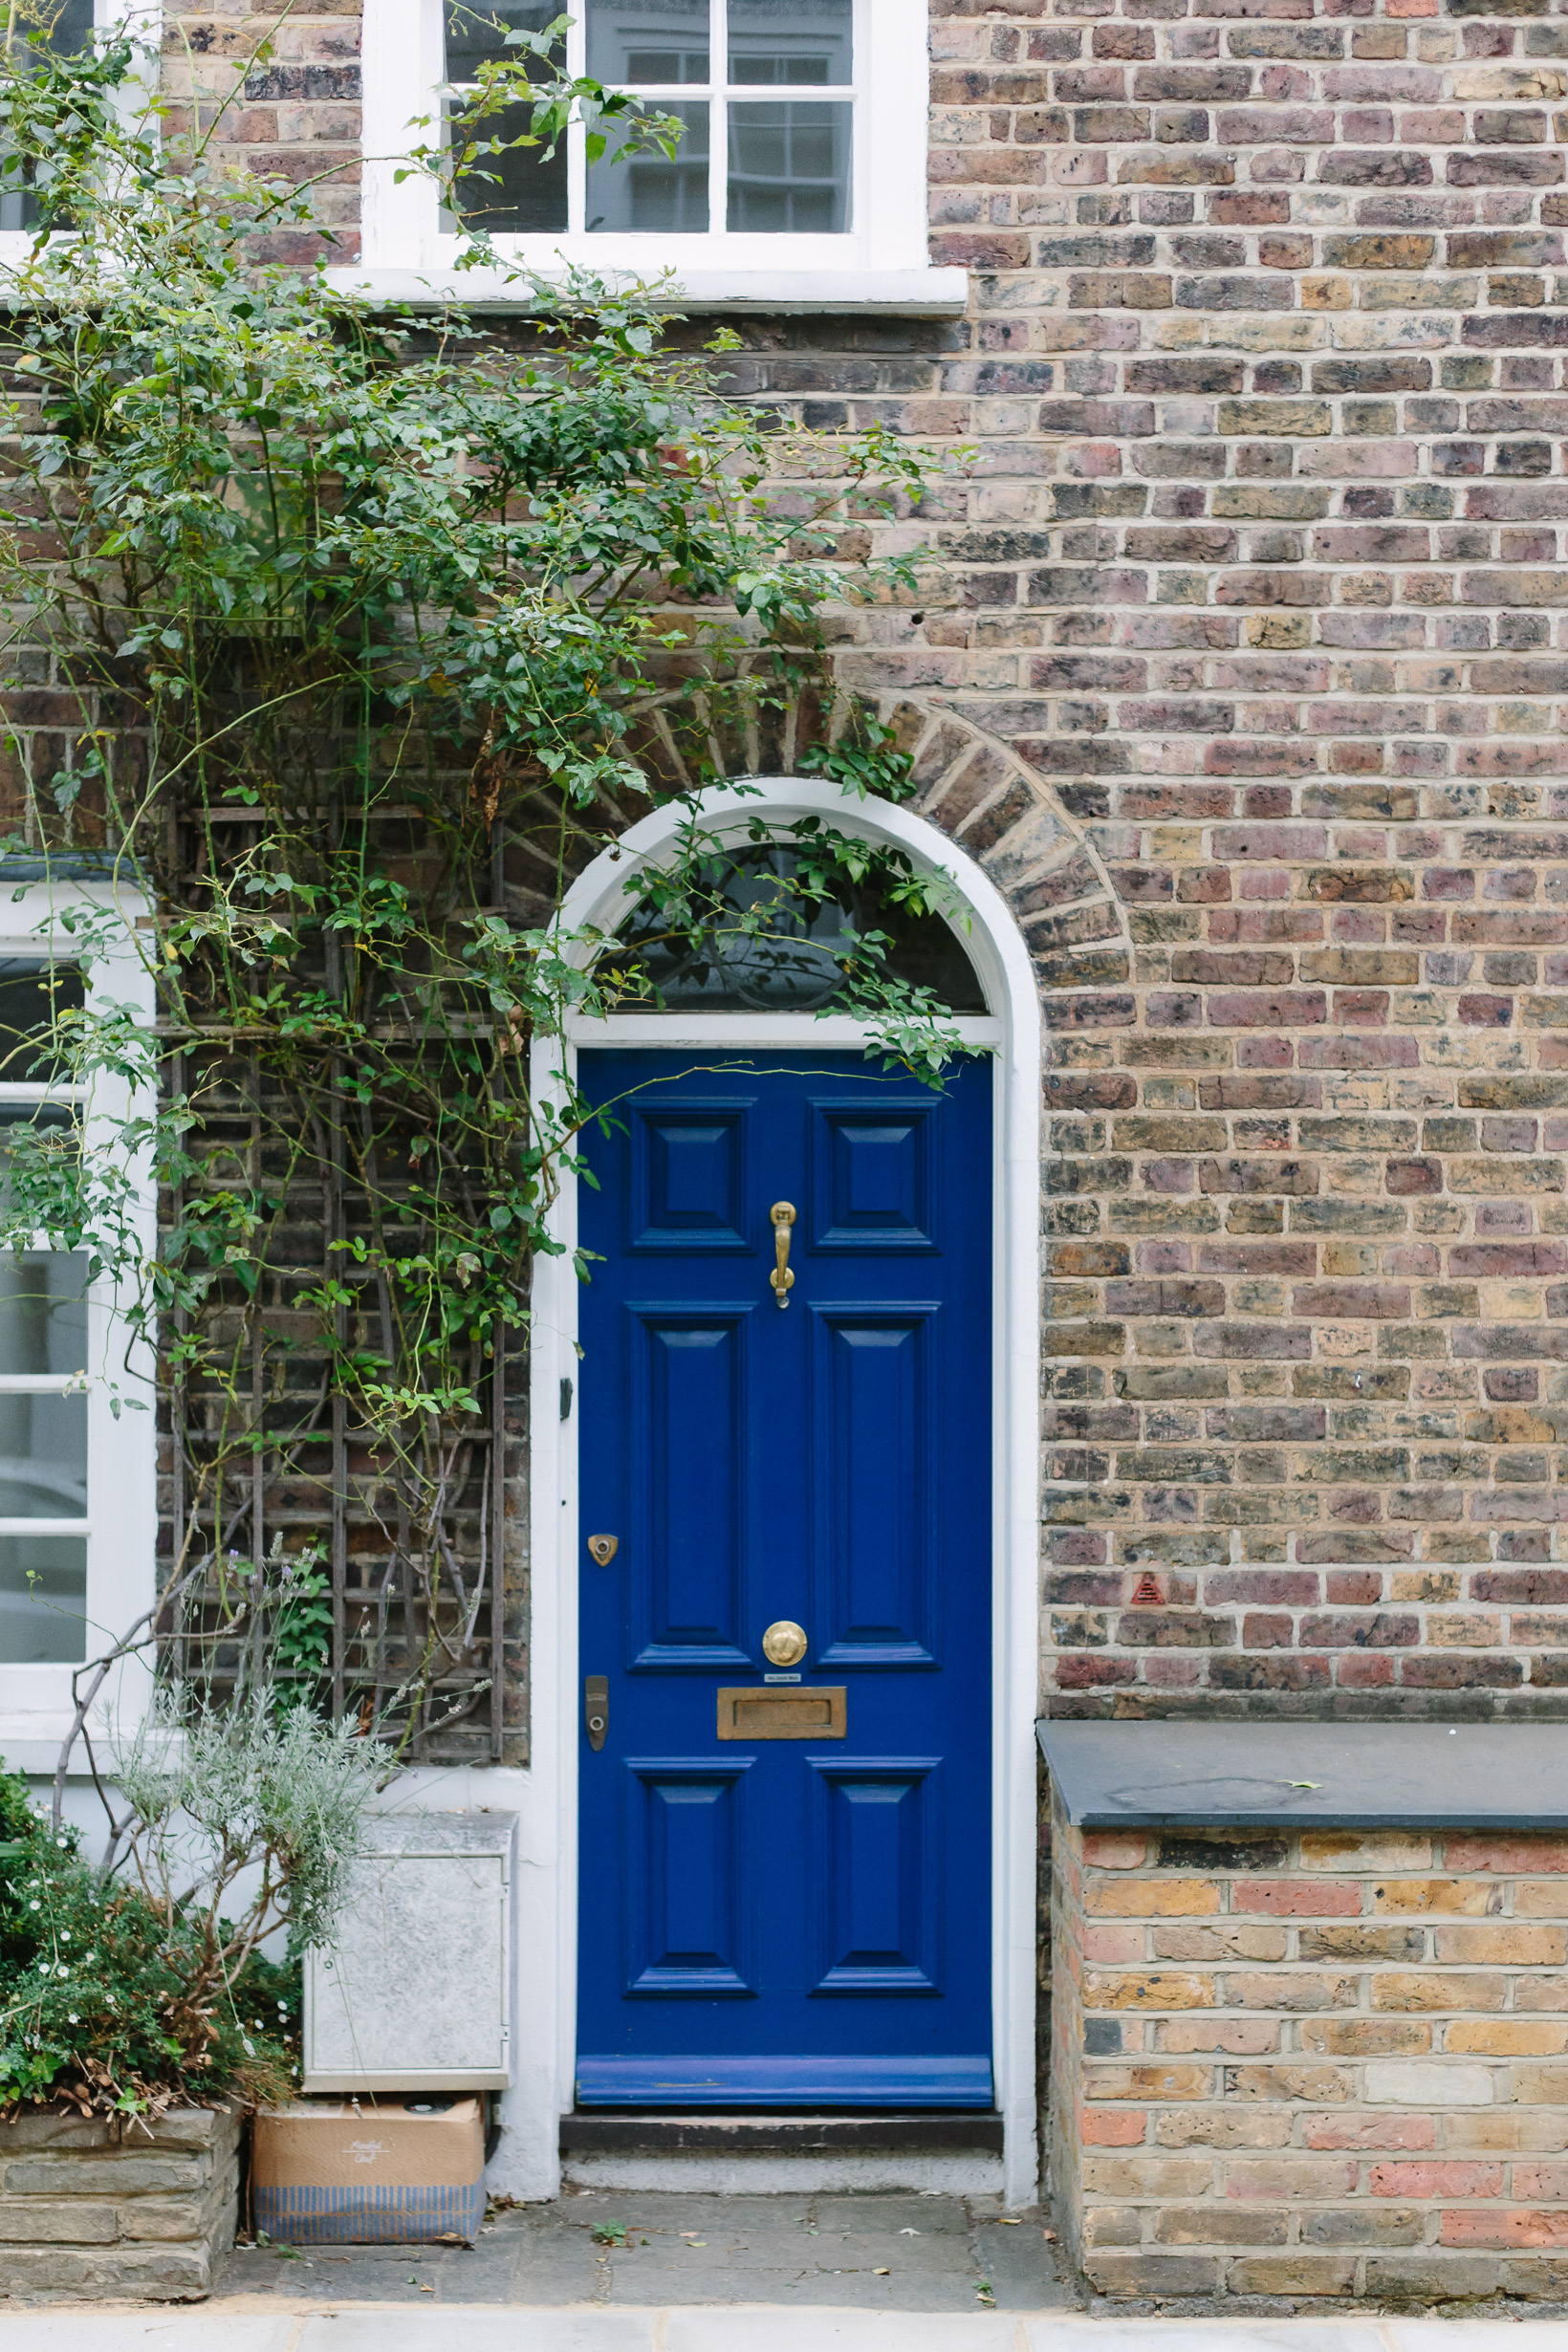 London Photo Essays Colorful Doors and Charming Mews & London Photo Essays: Colorful Doors and Charming Mews - York Avenue